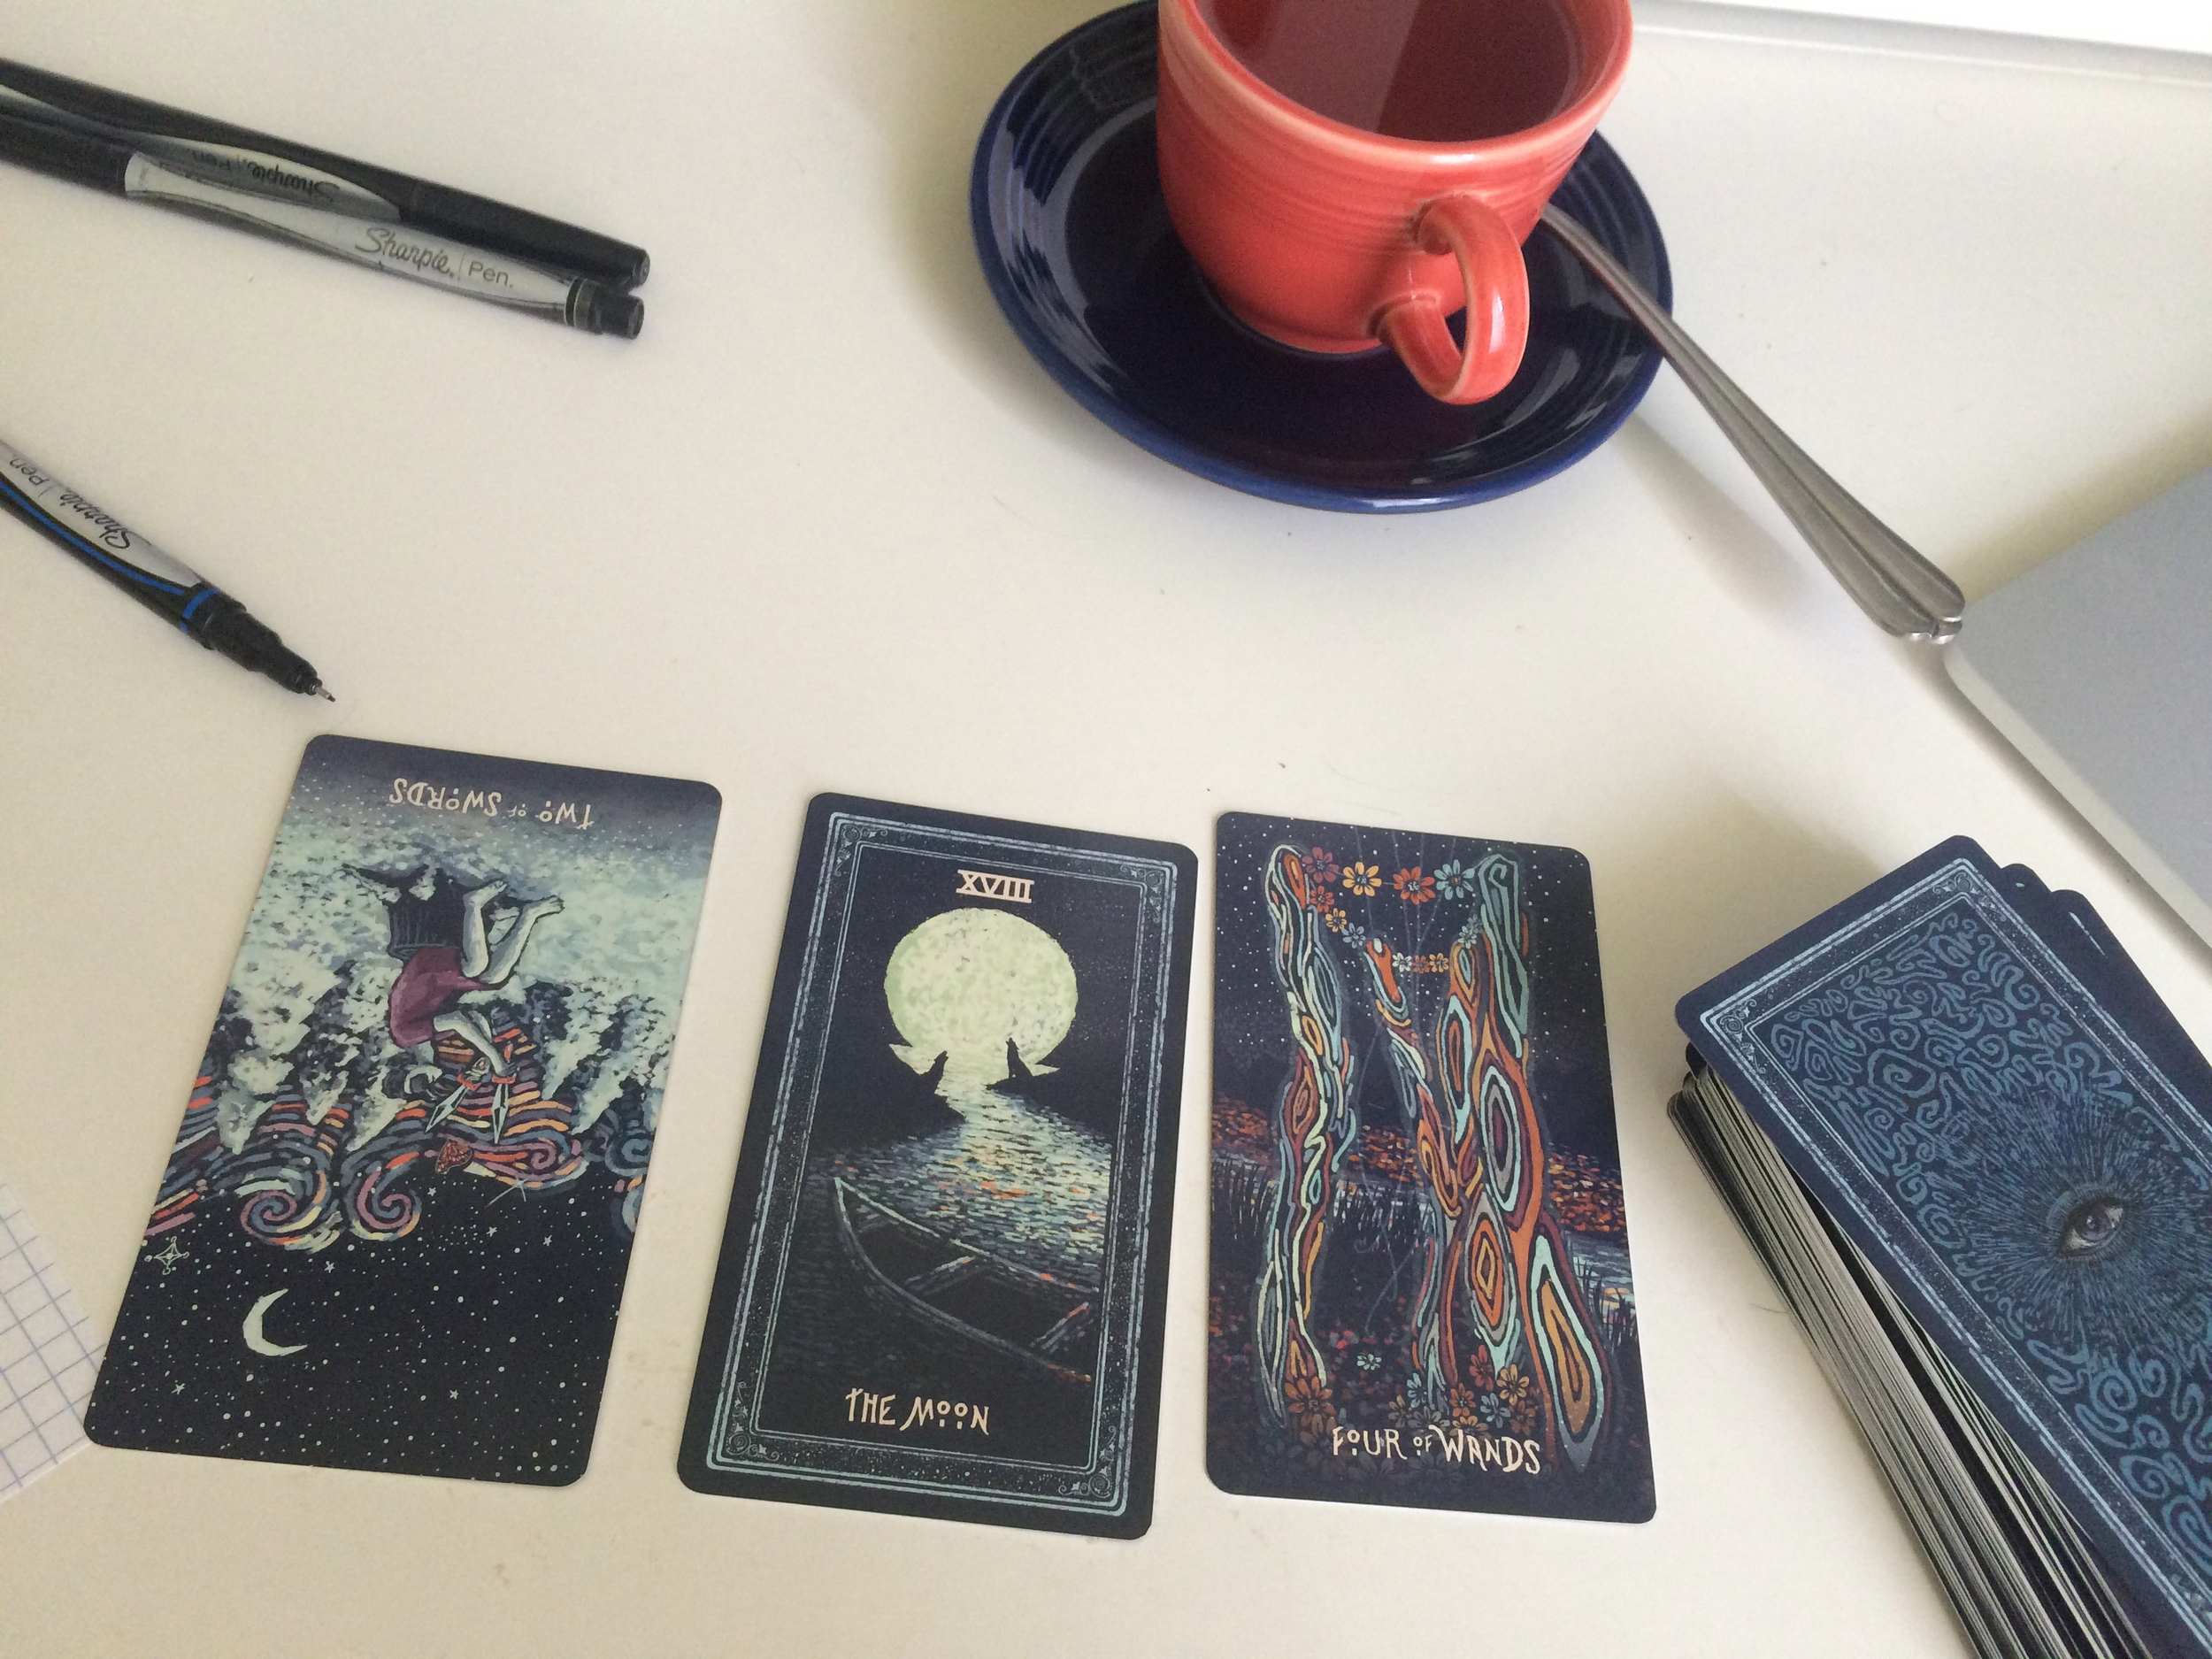 Tea and tarot in the morning.